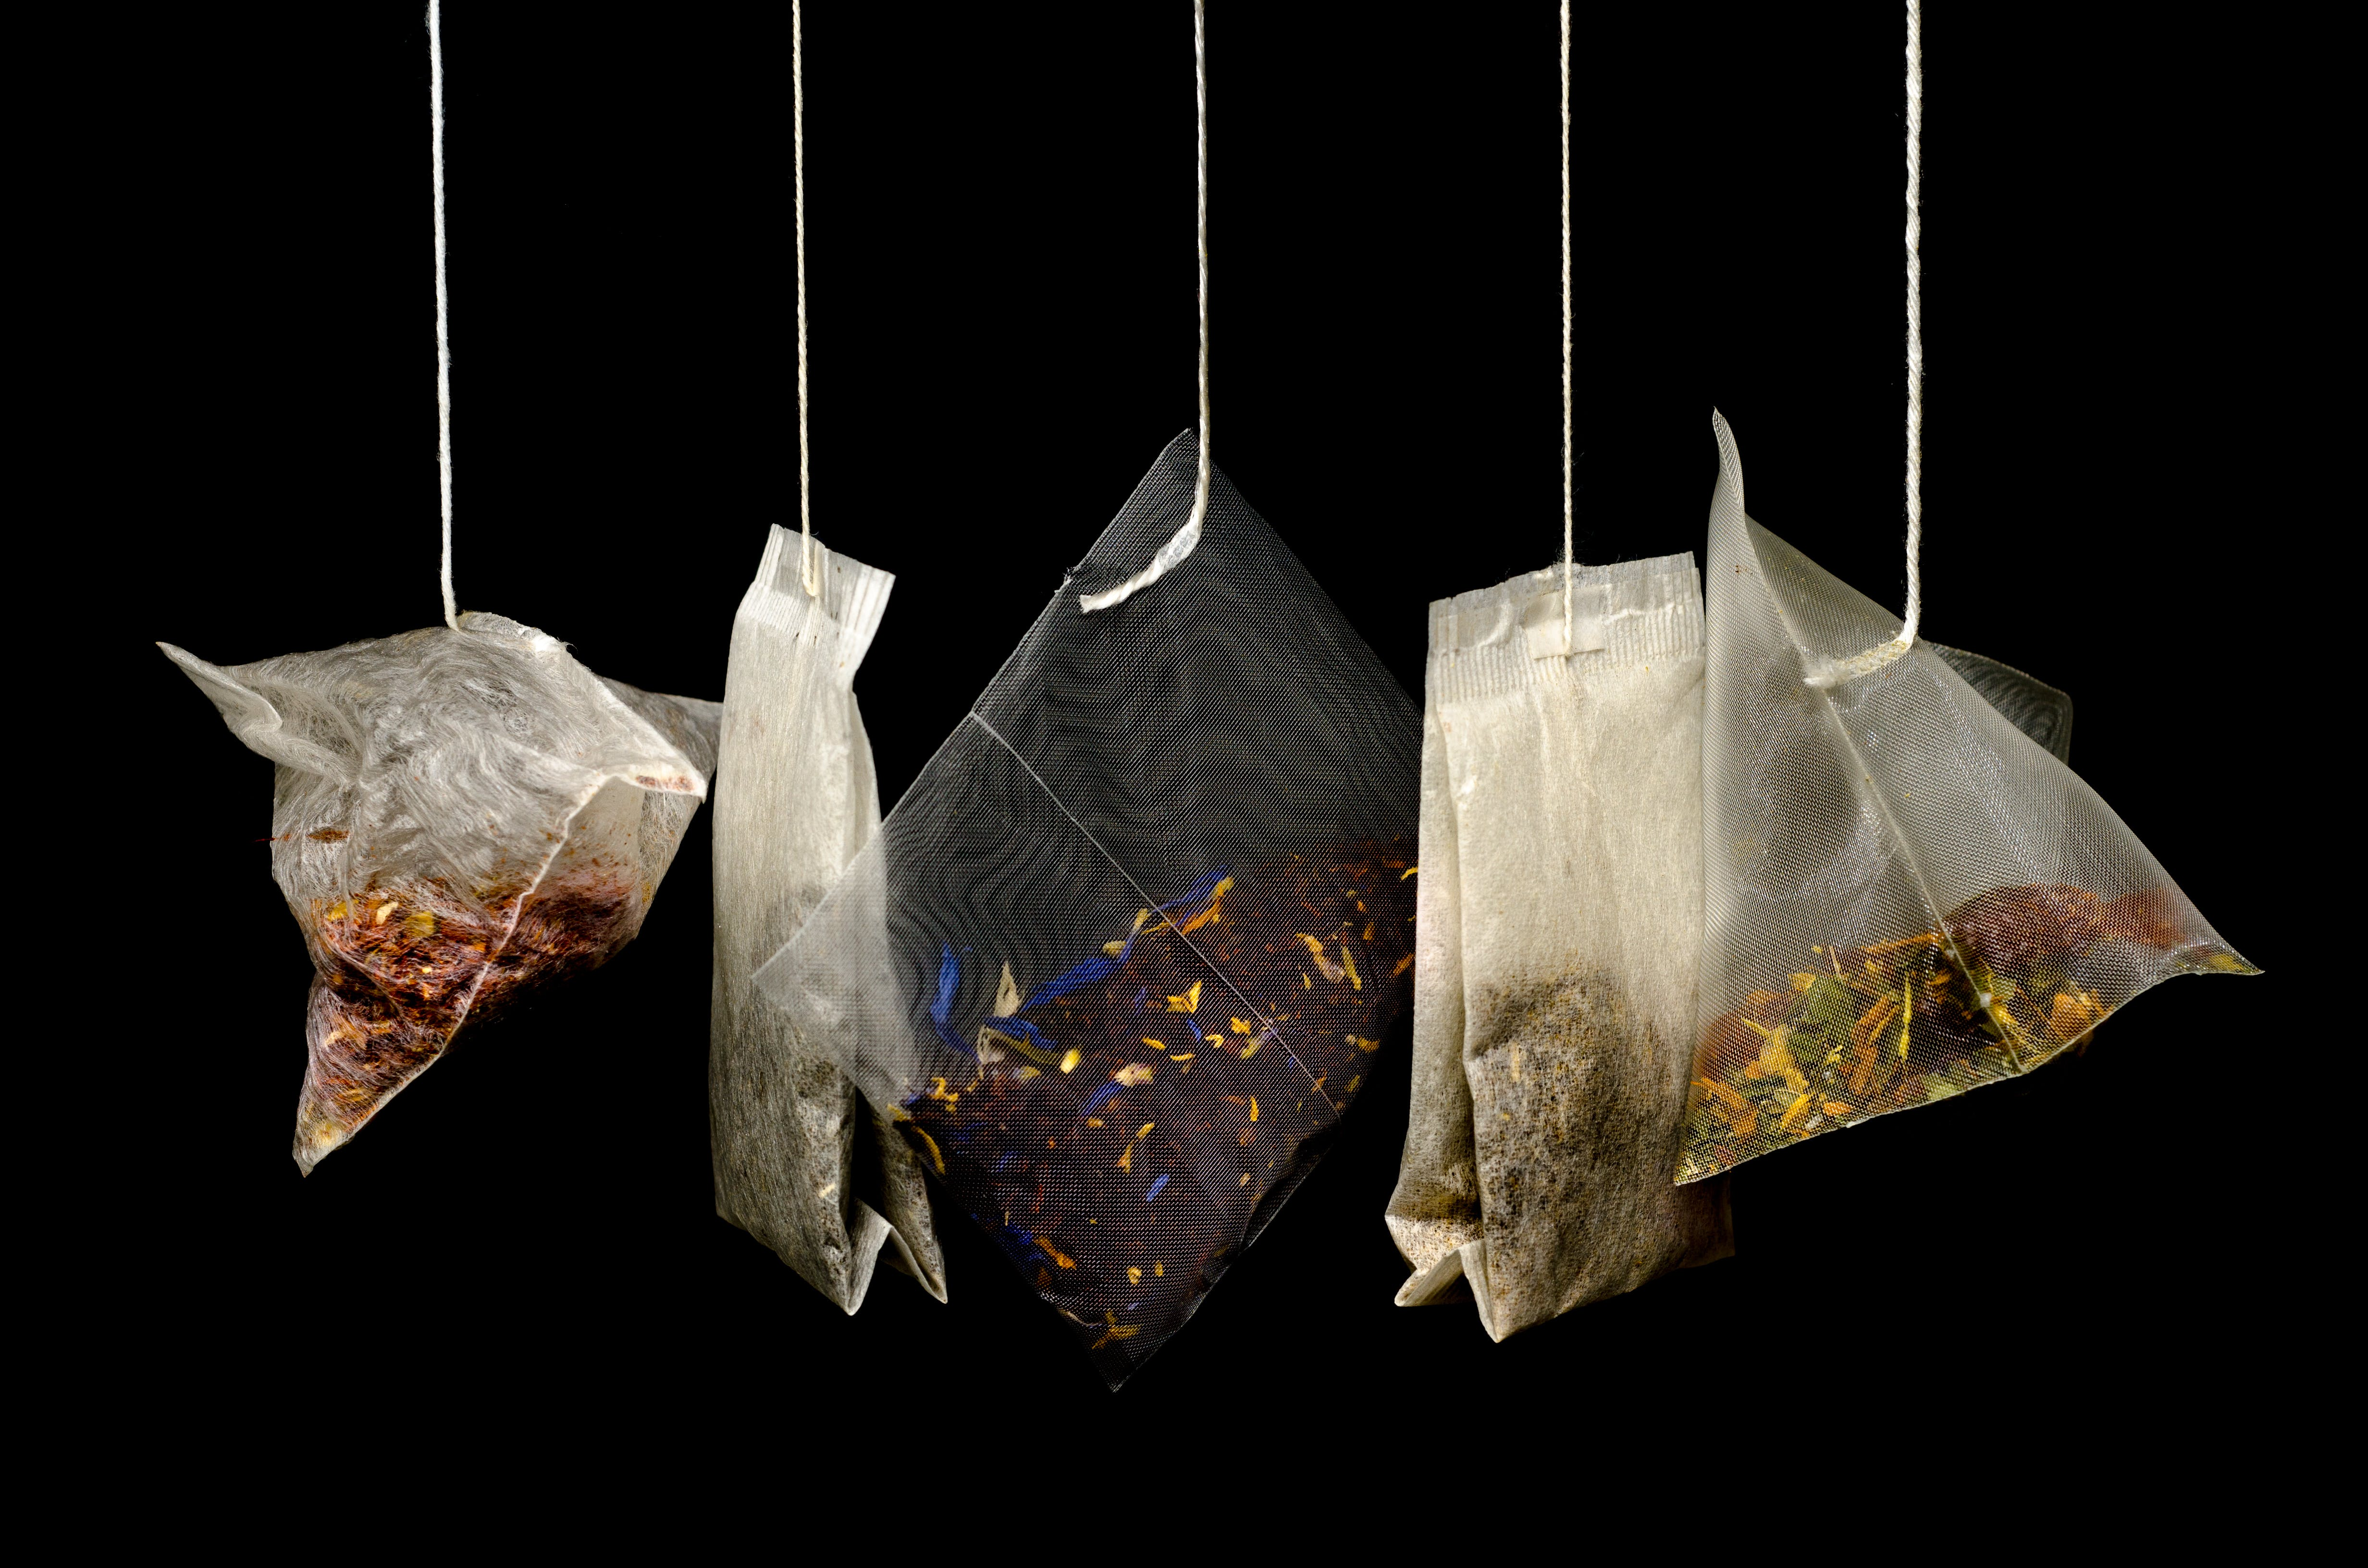 Used Tea Bag | Guaranteed Healthy Organic Compost With Natural Ingredients